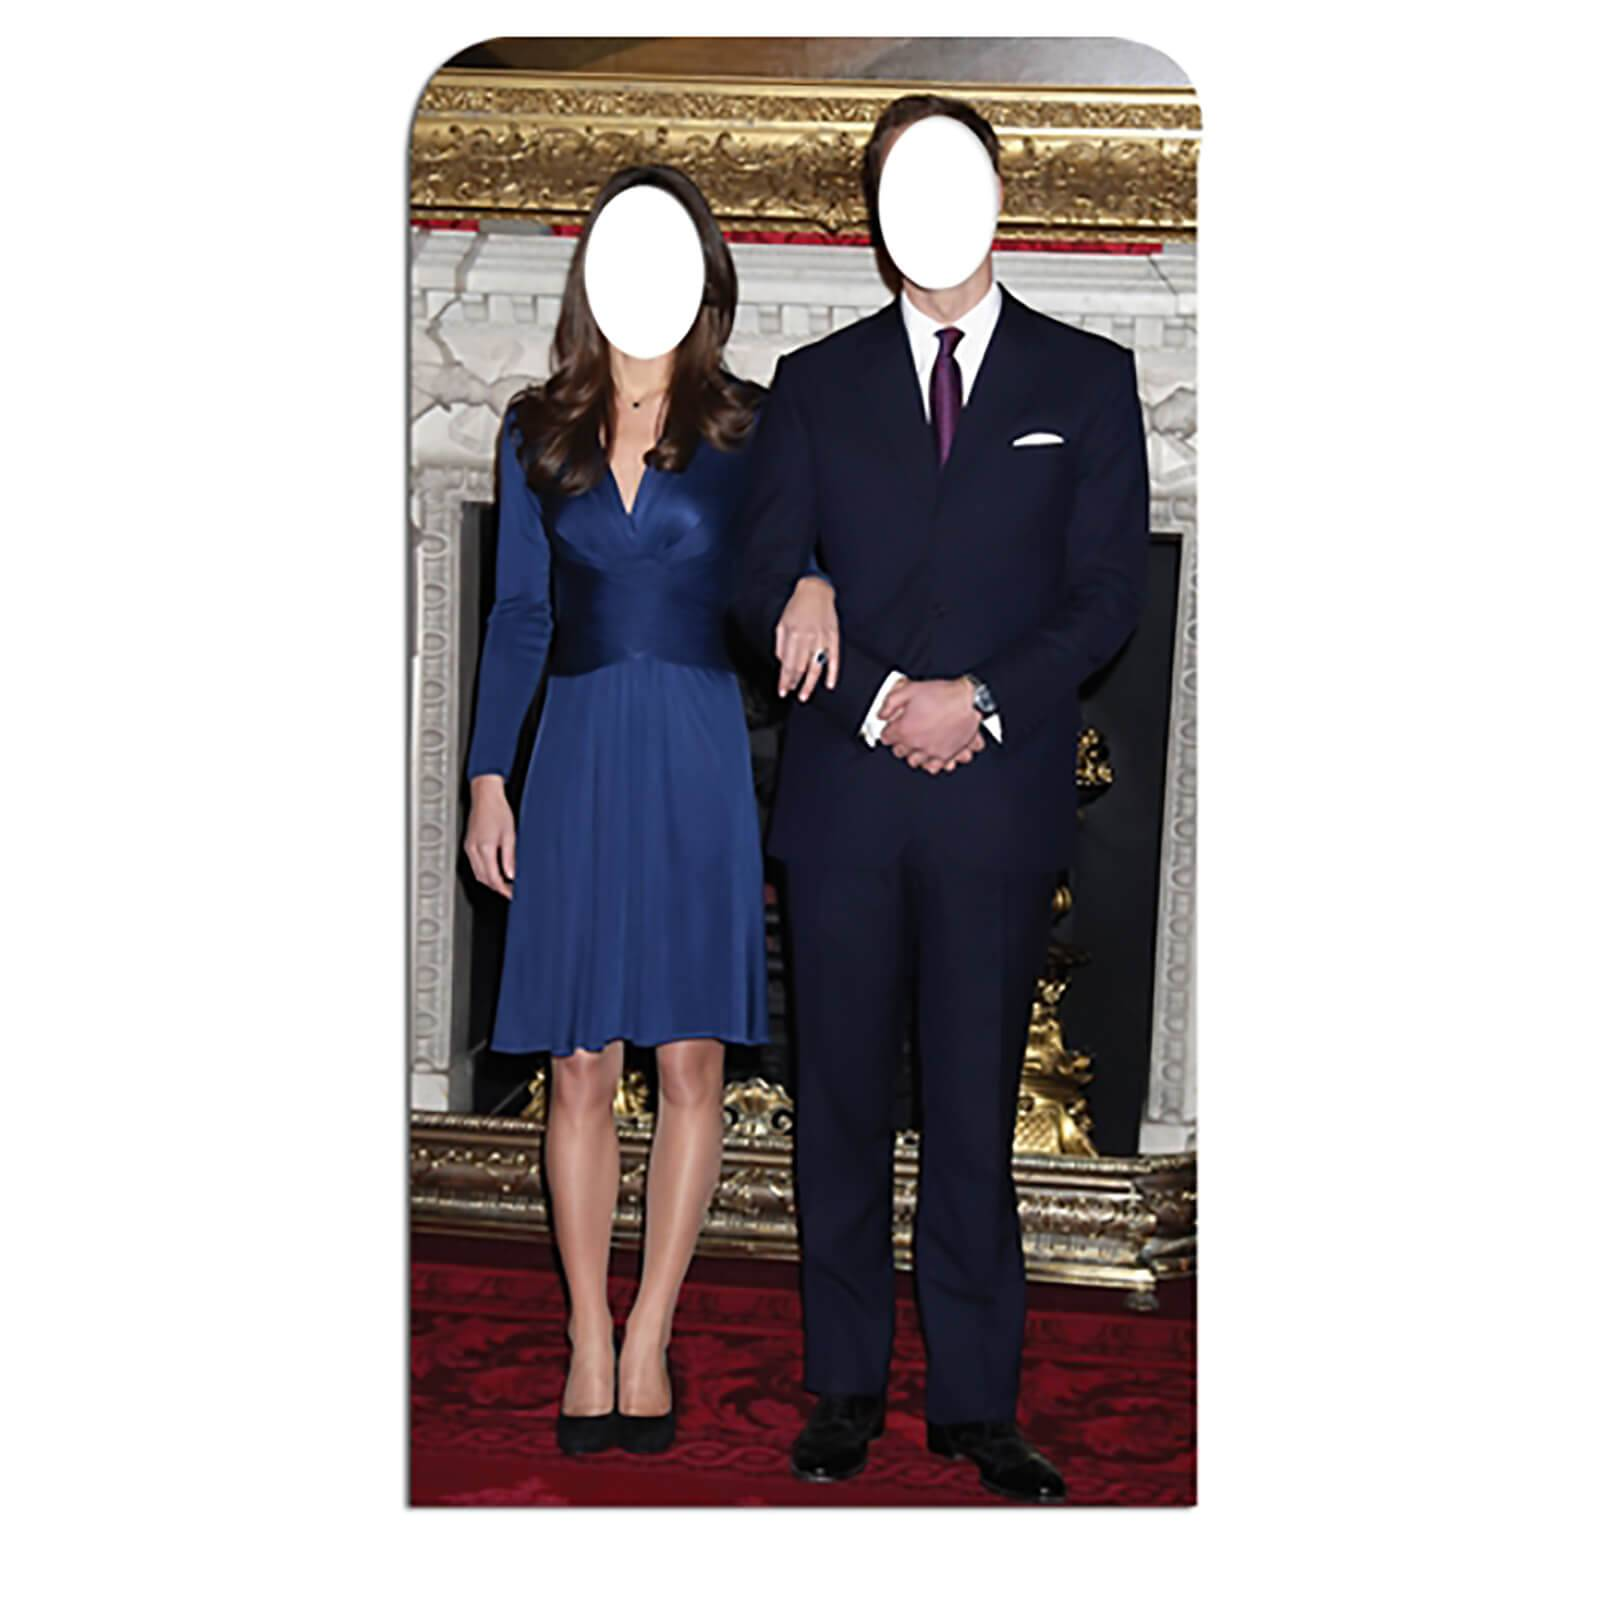 Star Cut Outs Will and Kate Stand-In Lifesize Cardboard Cut Out